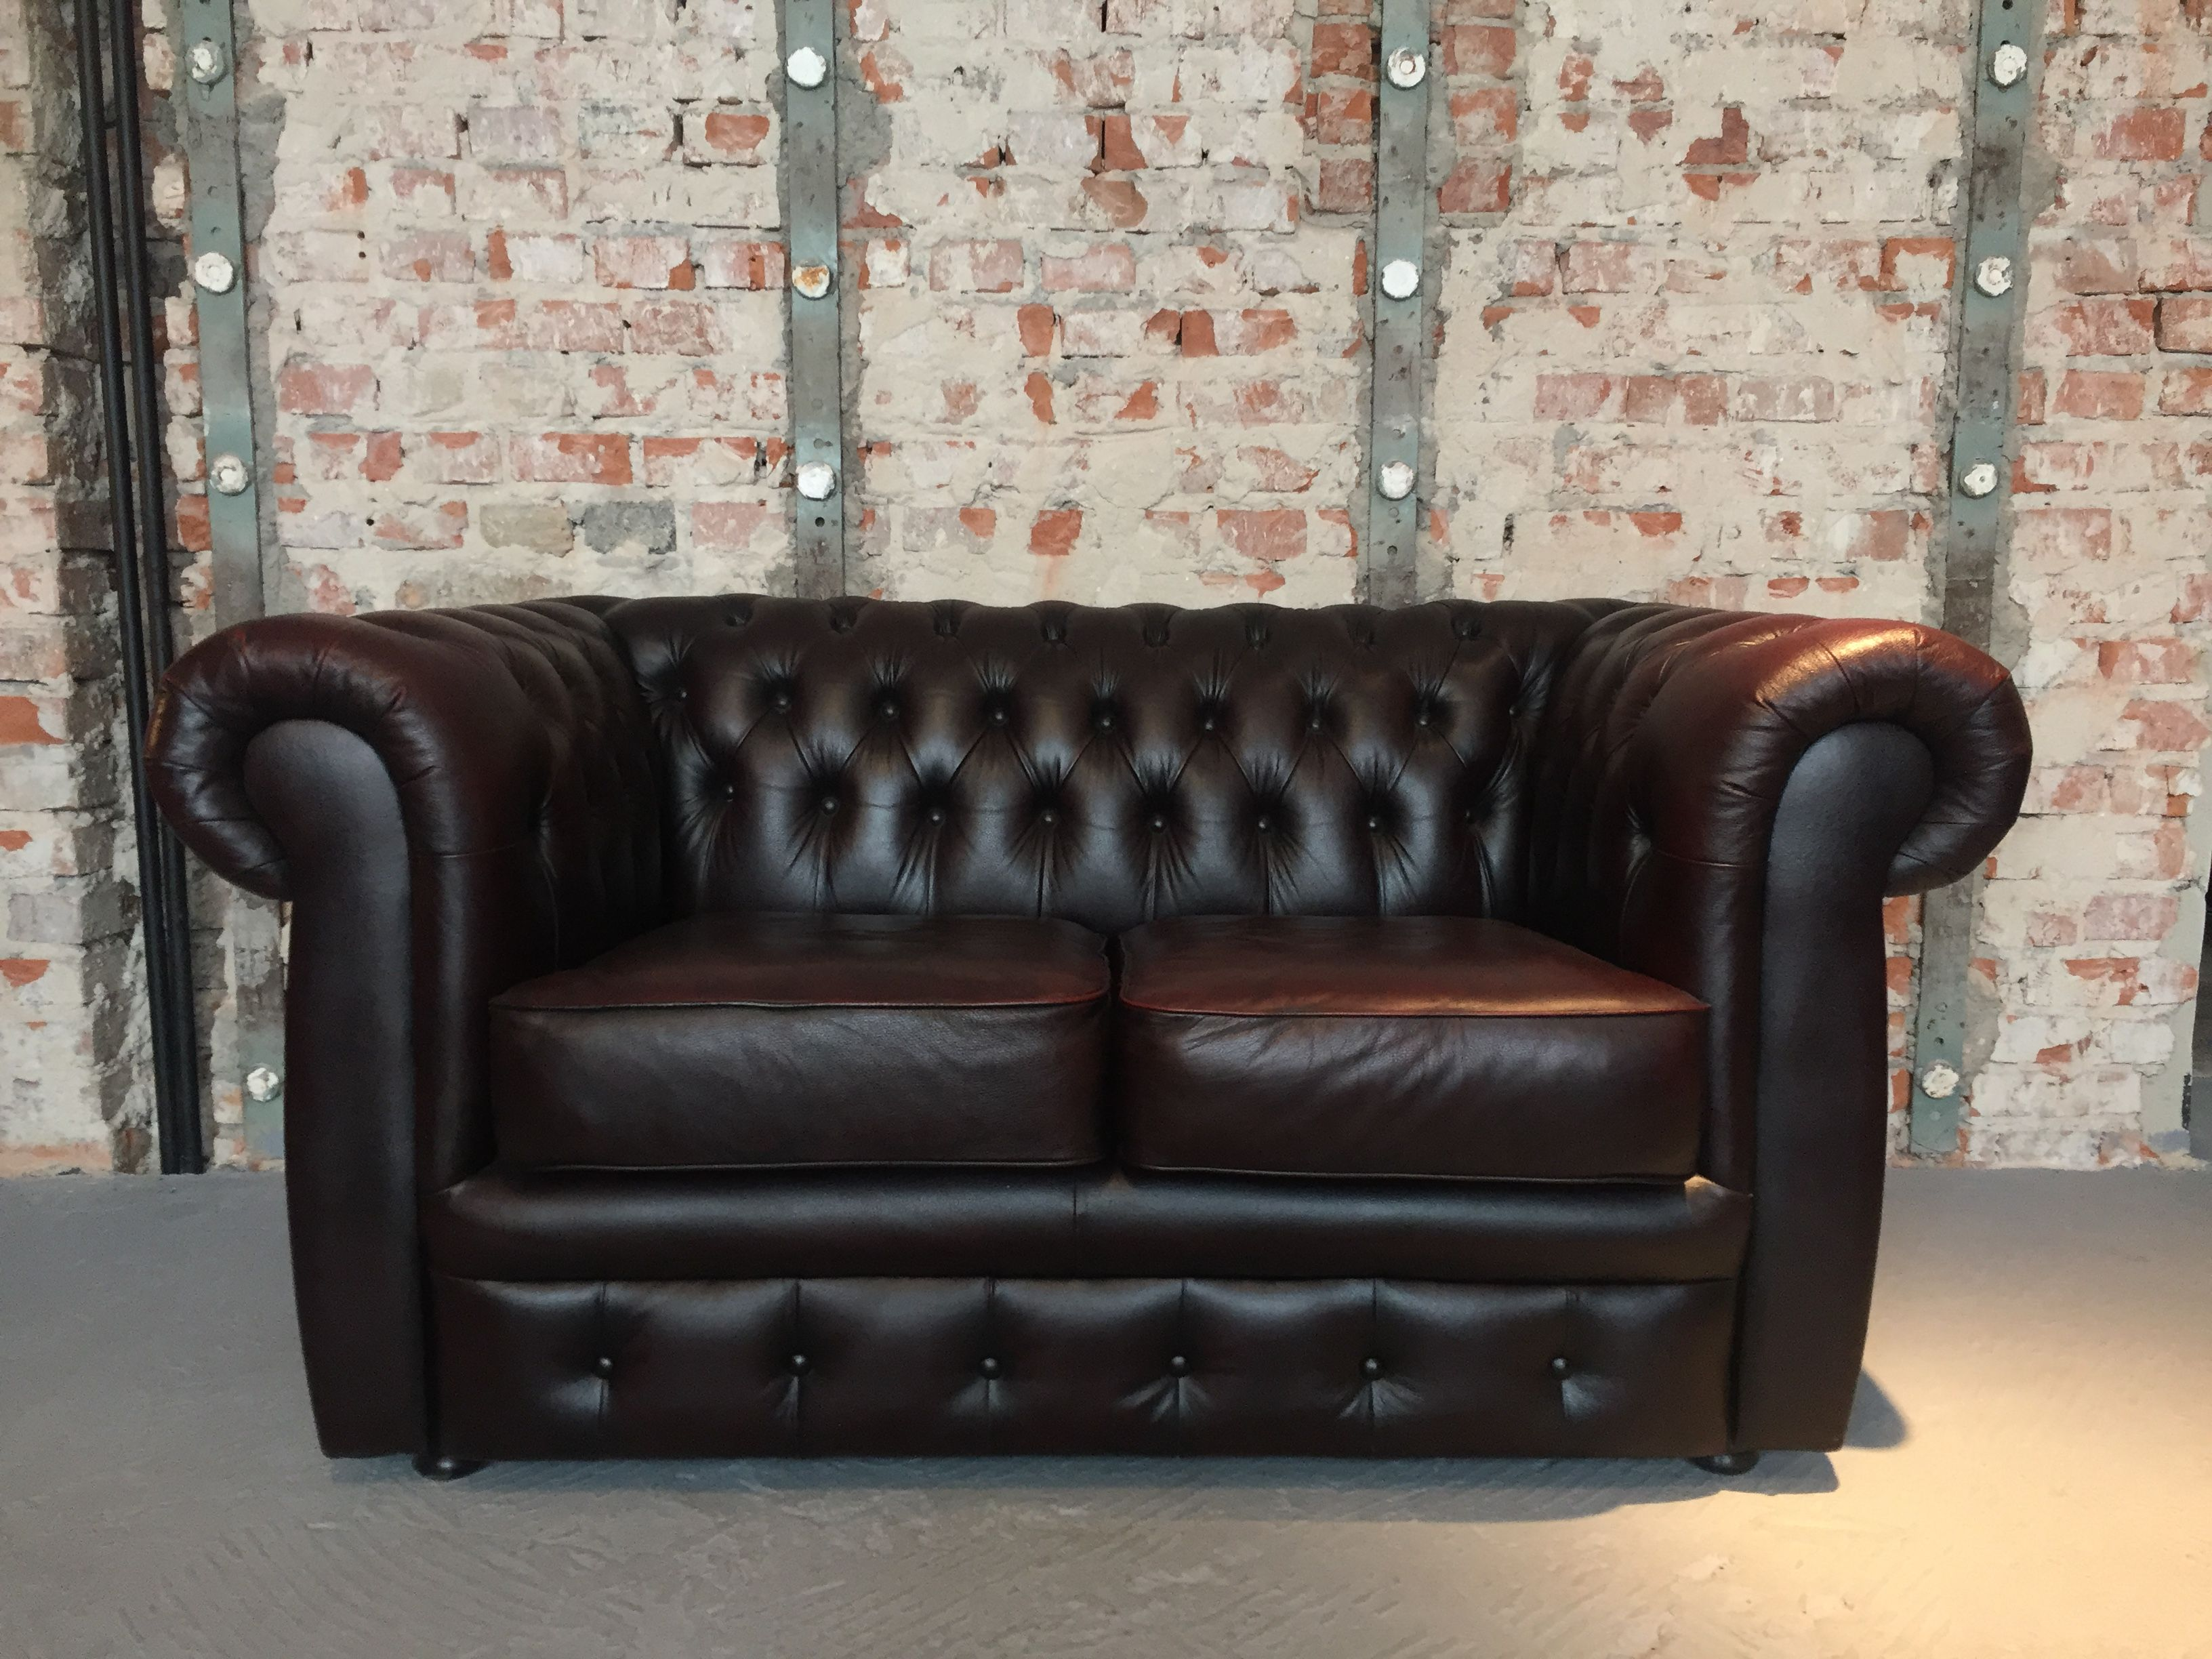 Original Chesterfield Sofa Brown Quilted Leather 2 Pers Vintage Style